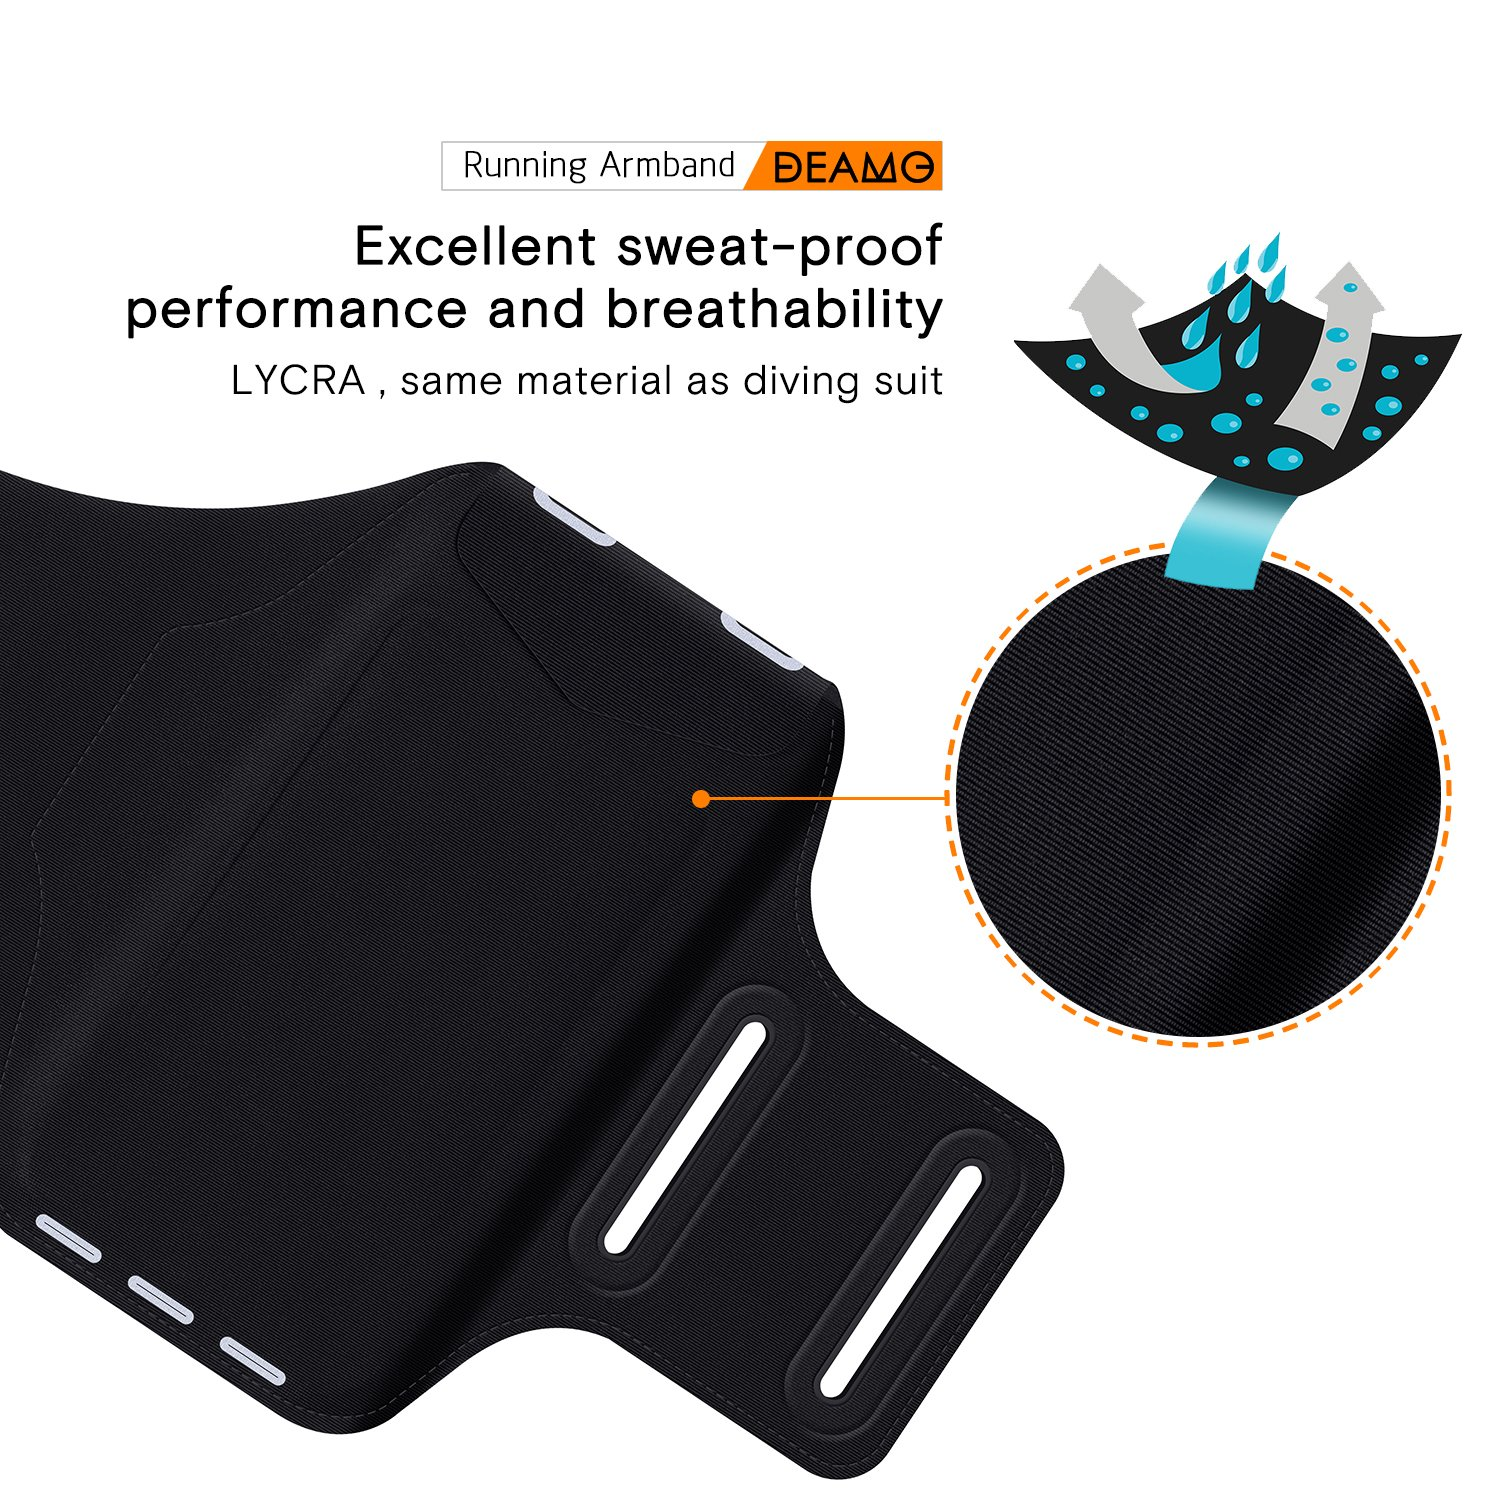 IPhone X, 8, 8+, 7, 7+, 6S, 6S+, 6, 6+ Samsung S8 S9 SPORTS Armband - Fingerprint Touch, Great for Running, Cycling or any Fitness Activity, Unique Hidden Pocket for Stores Cash, Cards and Keys. by Deamo (Image #5)